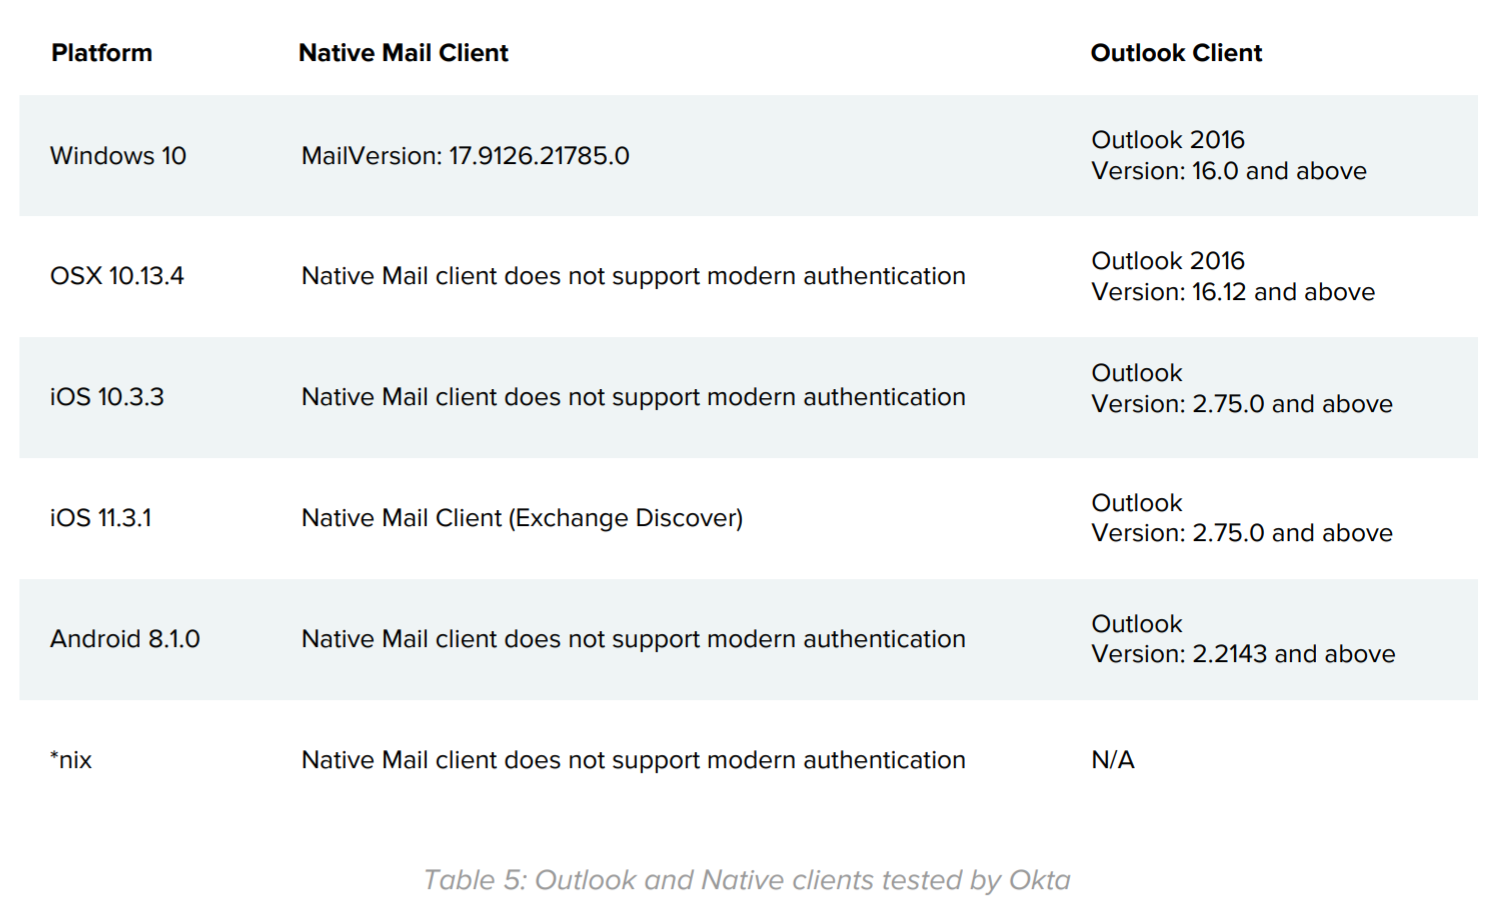 Table 5: Outlook and Native clients tested by Okta.